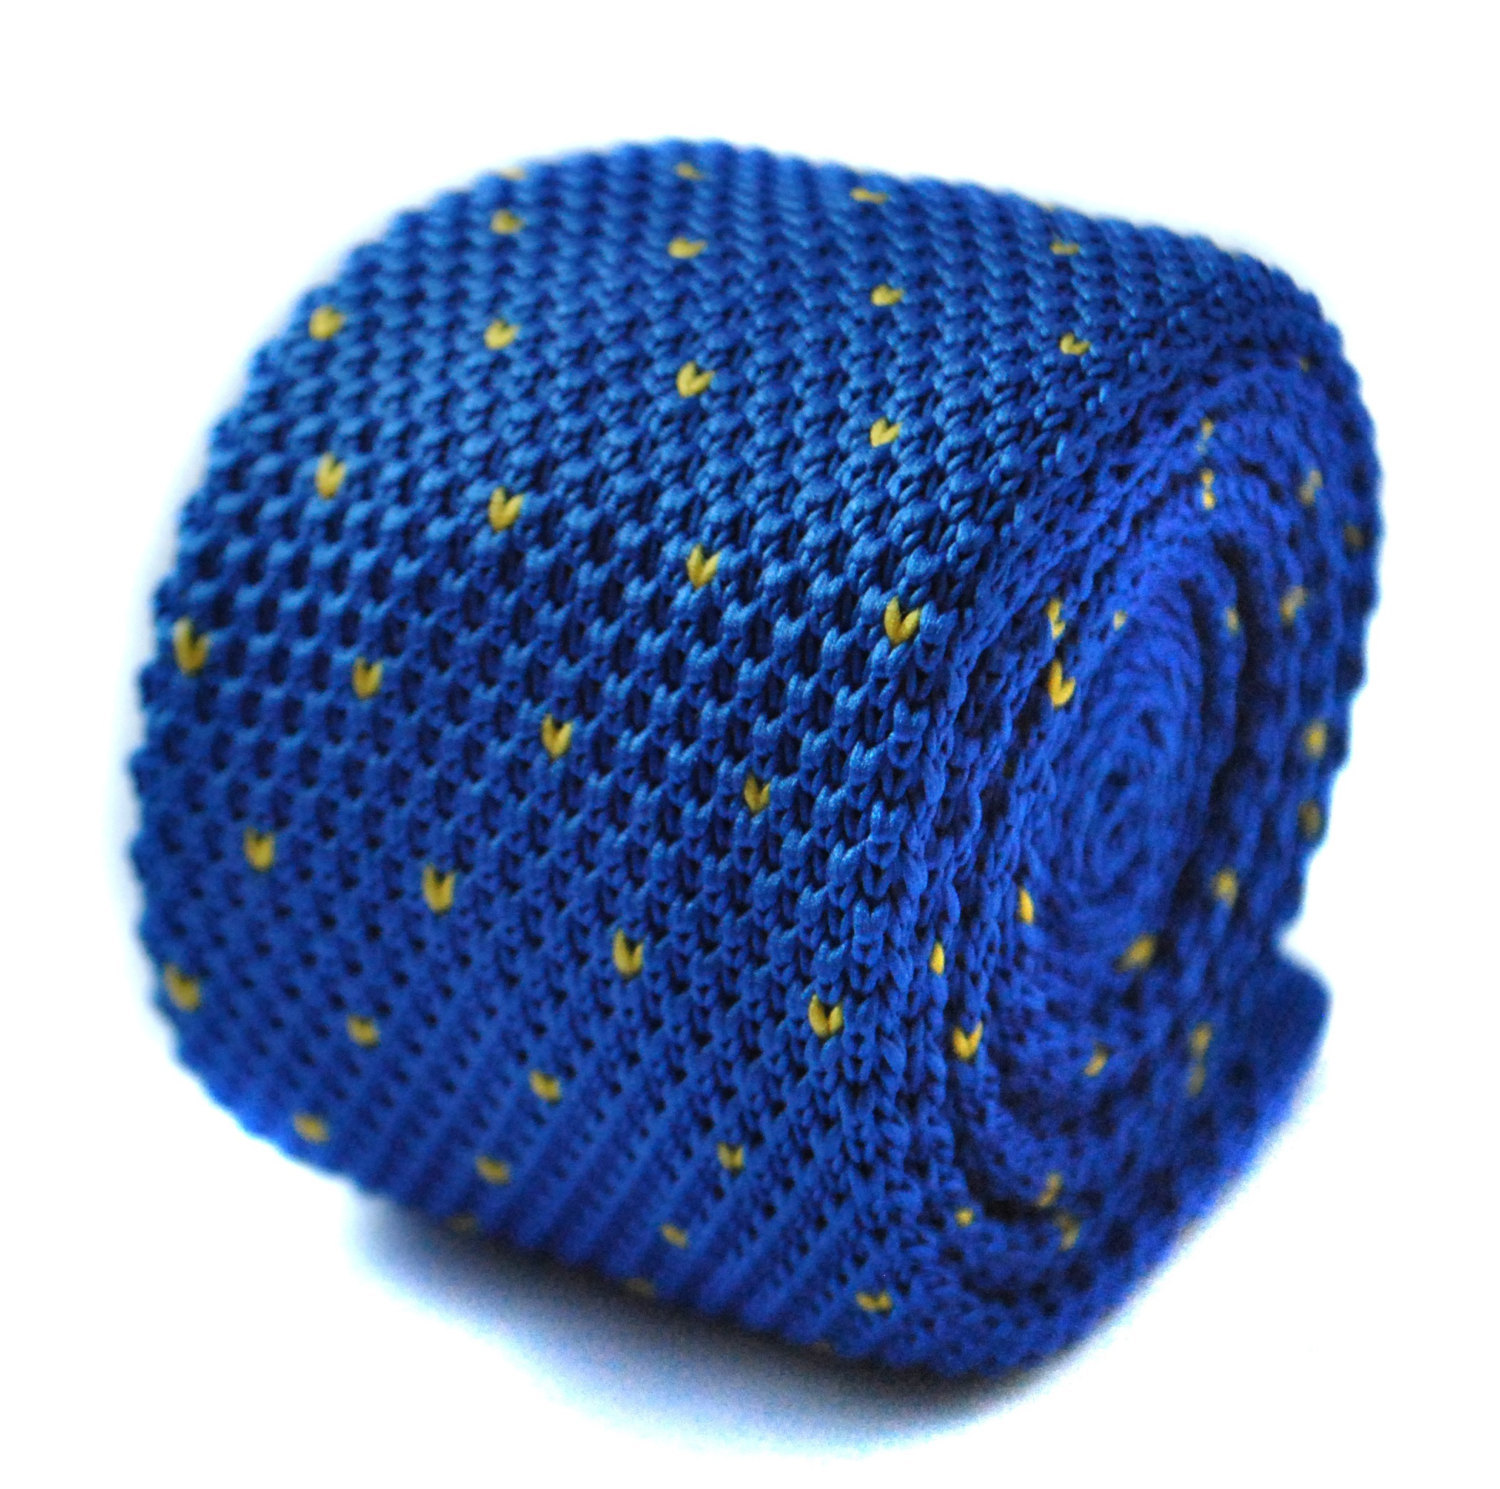 Knitted royal blue and yellow pin spot tie tie by Frederick Thomas FT1709